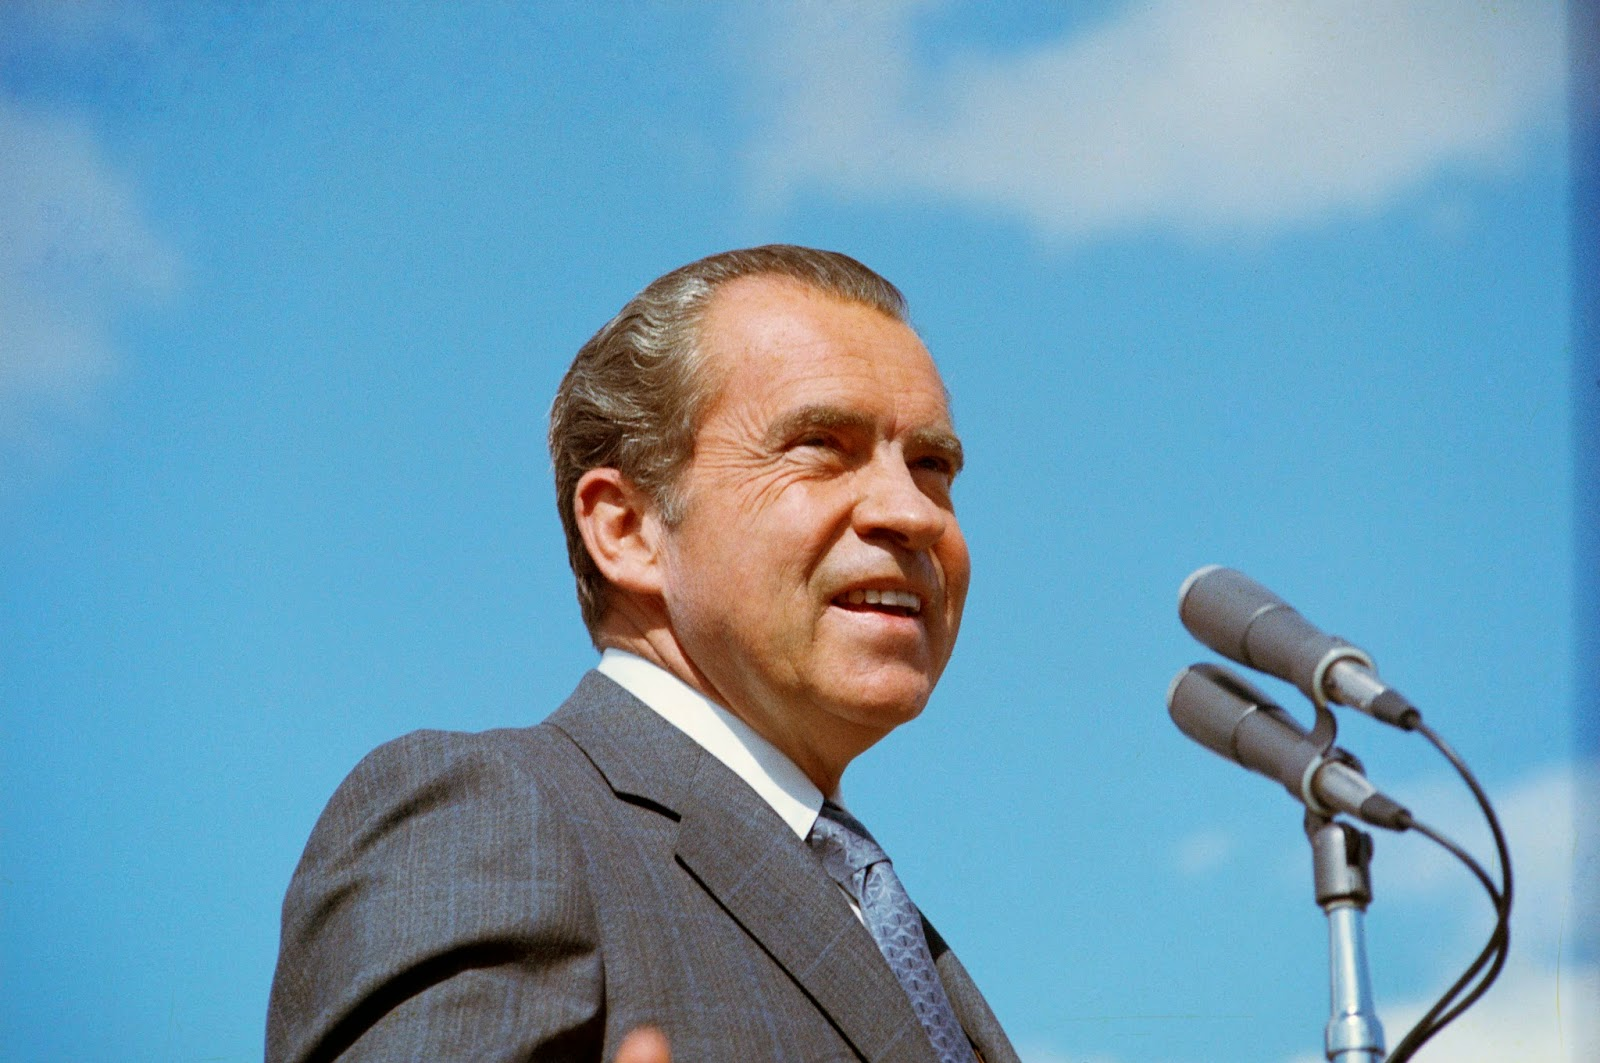 the journey of richard nixon to become the 37th president of the united states Richard nixon was elected the 37th president of the united states (1969-1974) after previously serving as a us representative and a us senator from california after successfully ending .